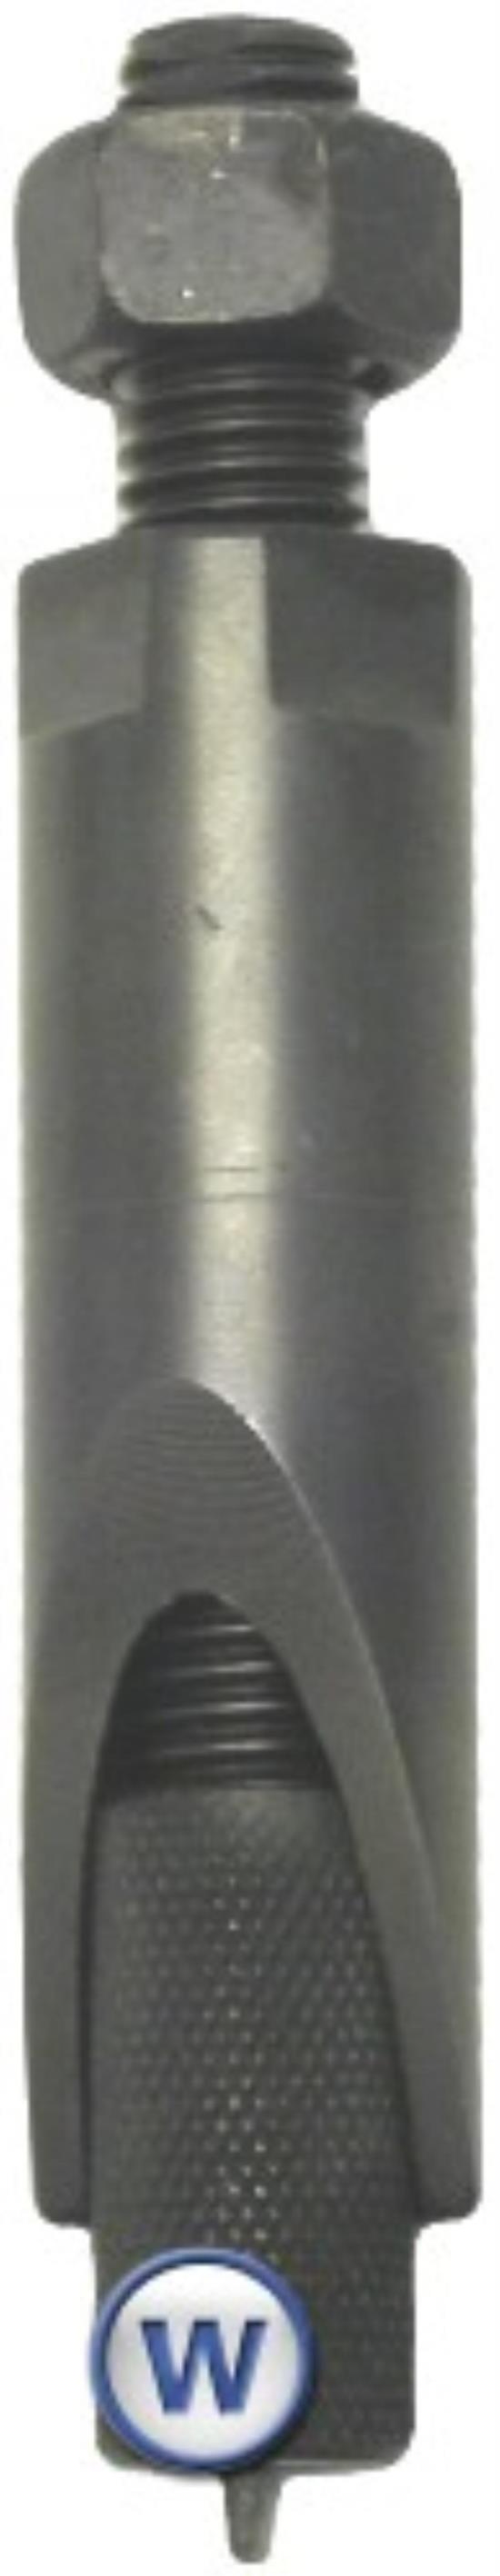 Picture of Speedo Drive Extractor for fork type adaptor (Pair)